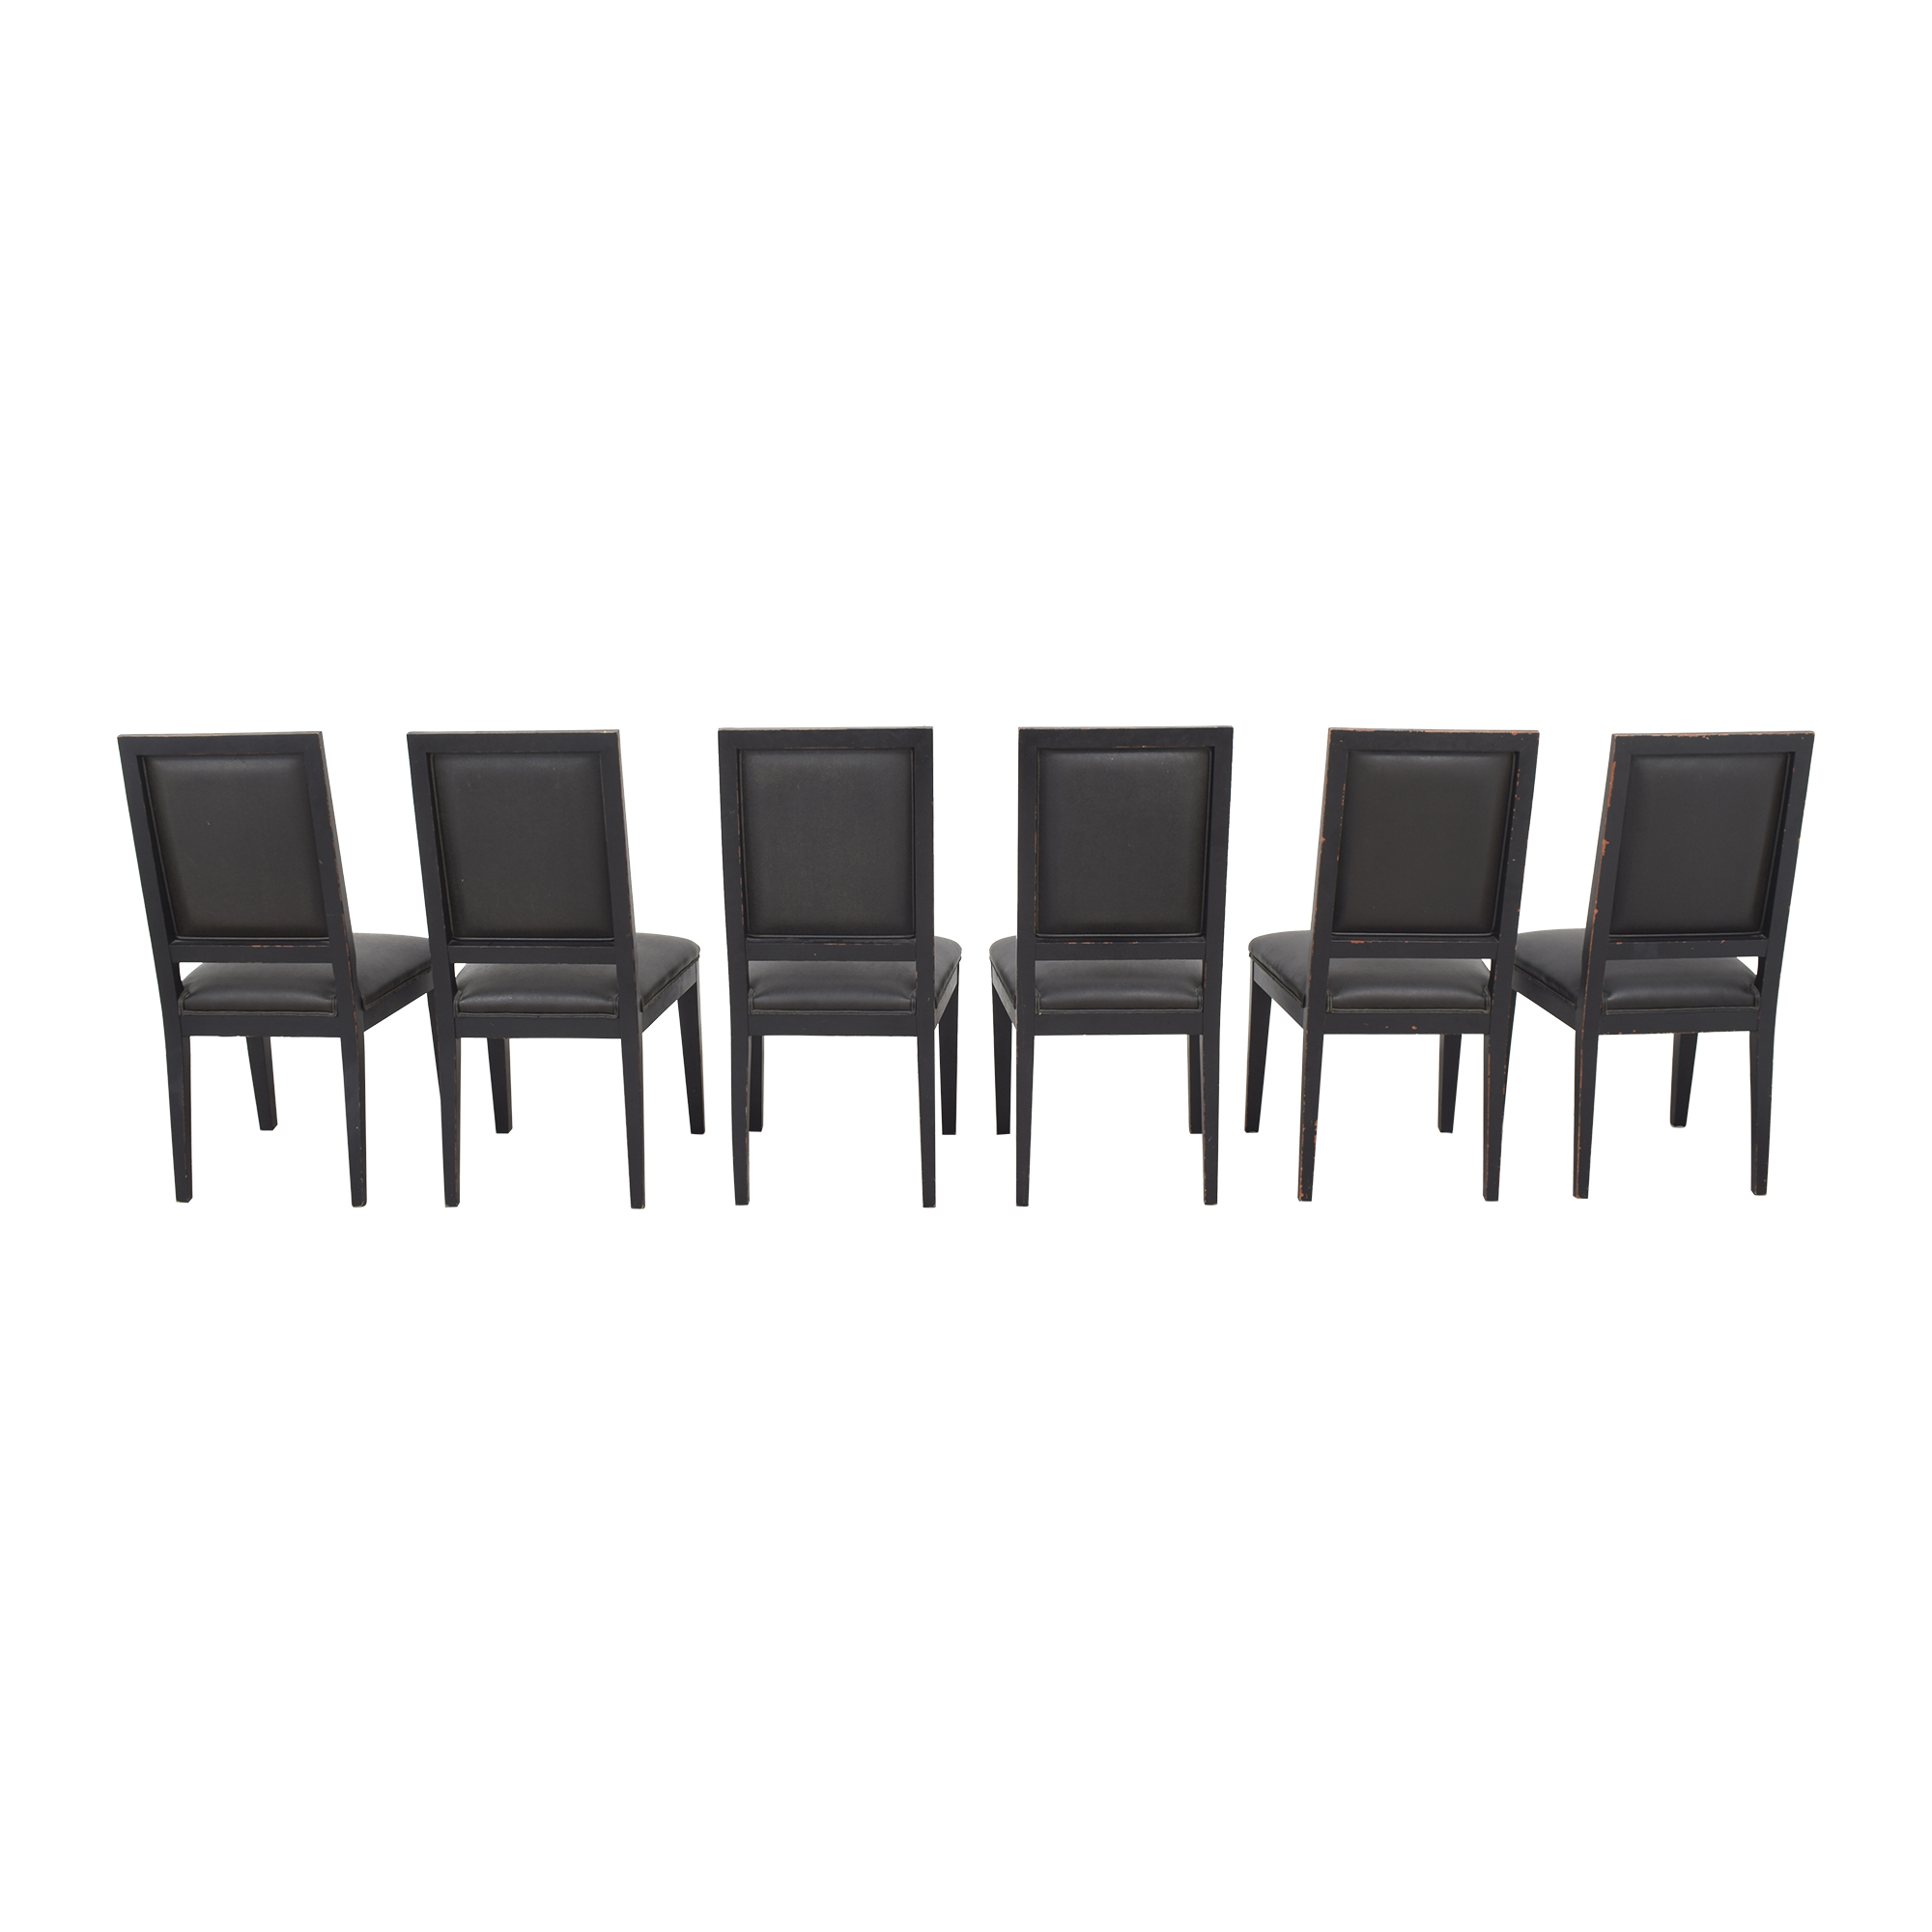 Crate & Barrel Crate & Barrel Sonata Dining Chairs second hand